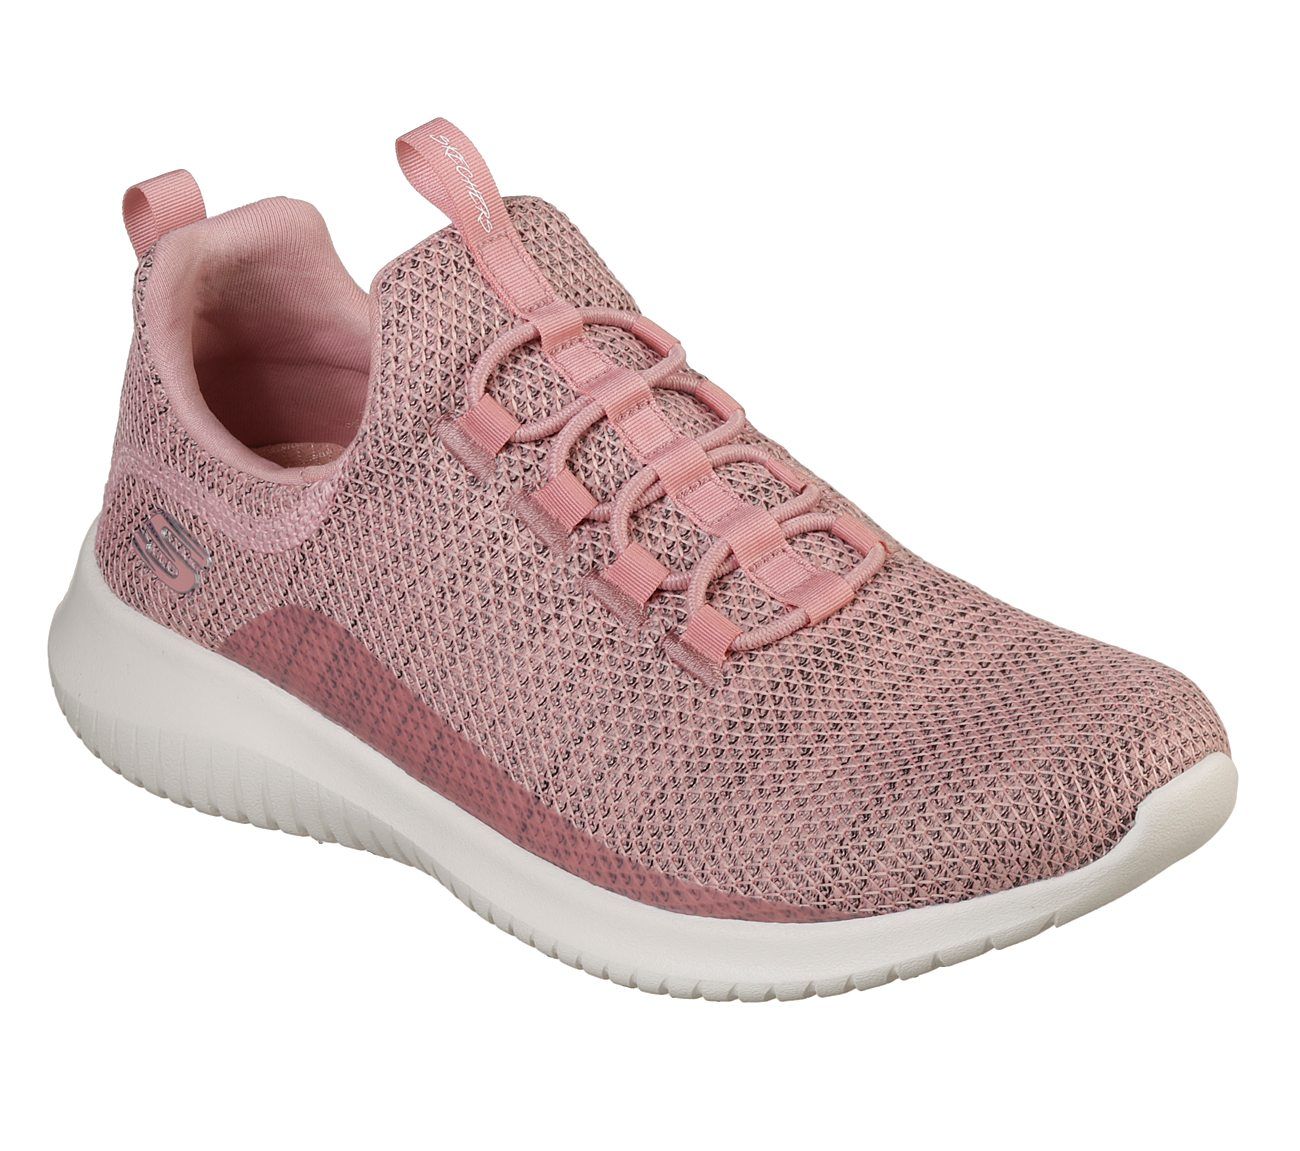 65fe2234 Buy SKECHERS Ultra Flex - Capsule Sport Shoes only 65,00 €